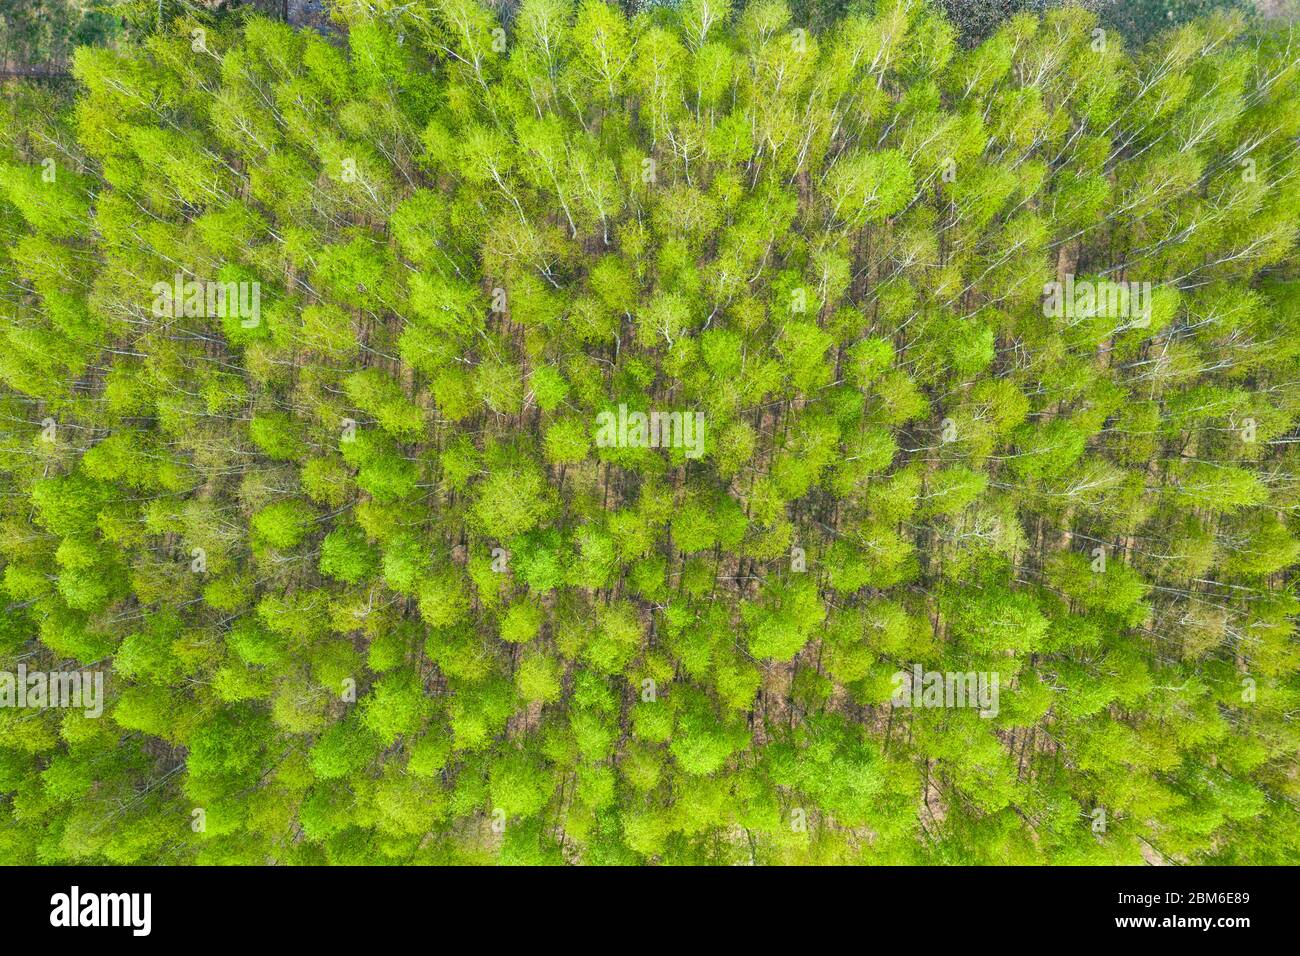 Aerial top view forest tree, Rainforest ecosystem and healthy environment concept and background, Texture of green tree forest view from above. Stock Photo